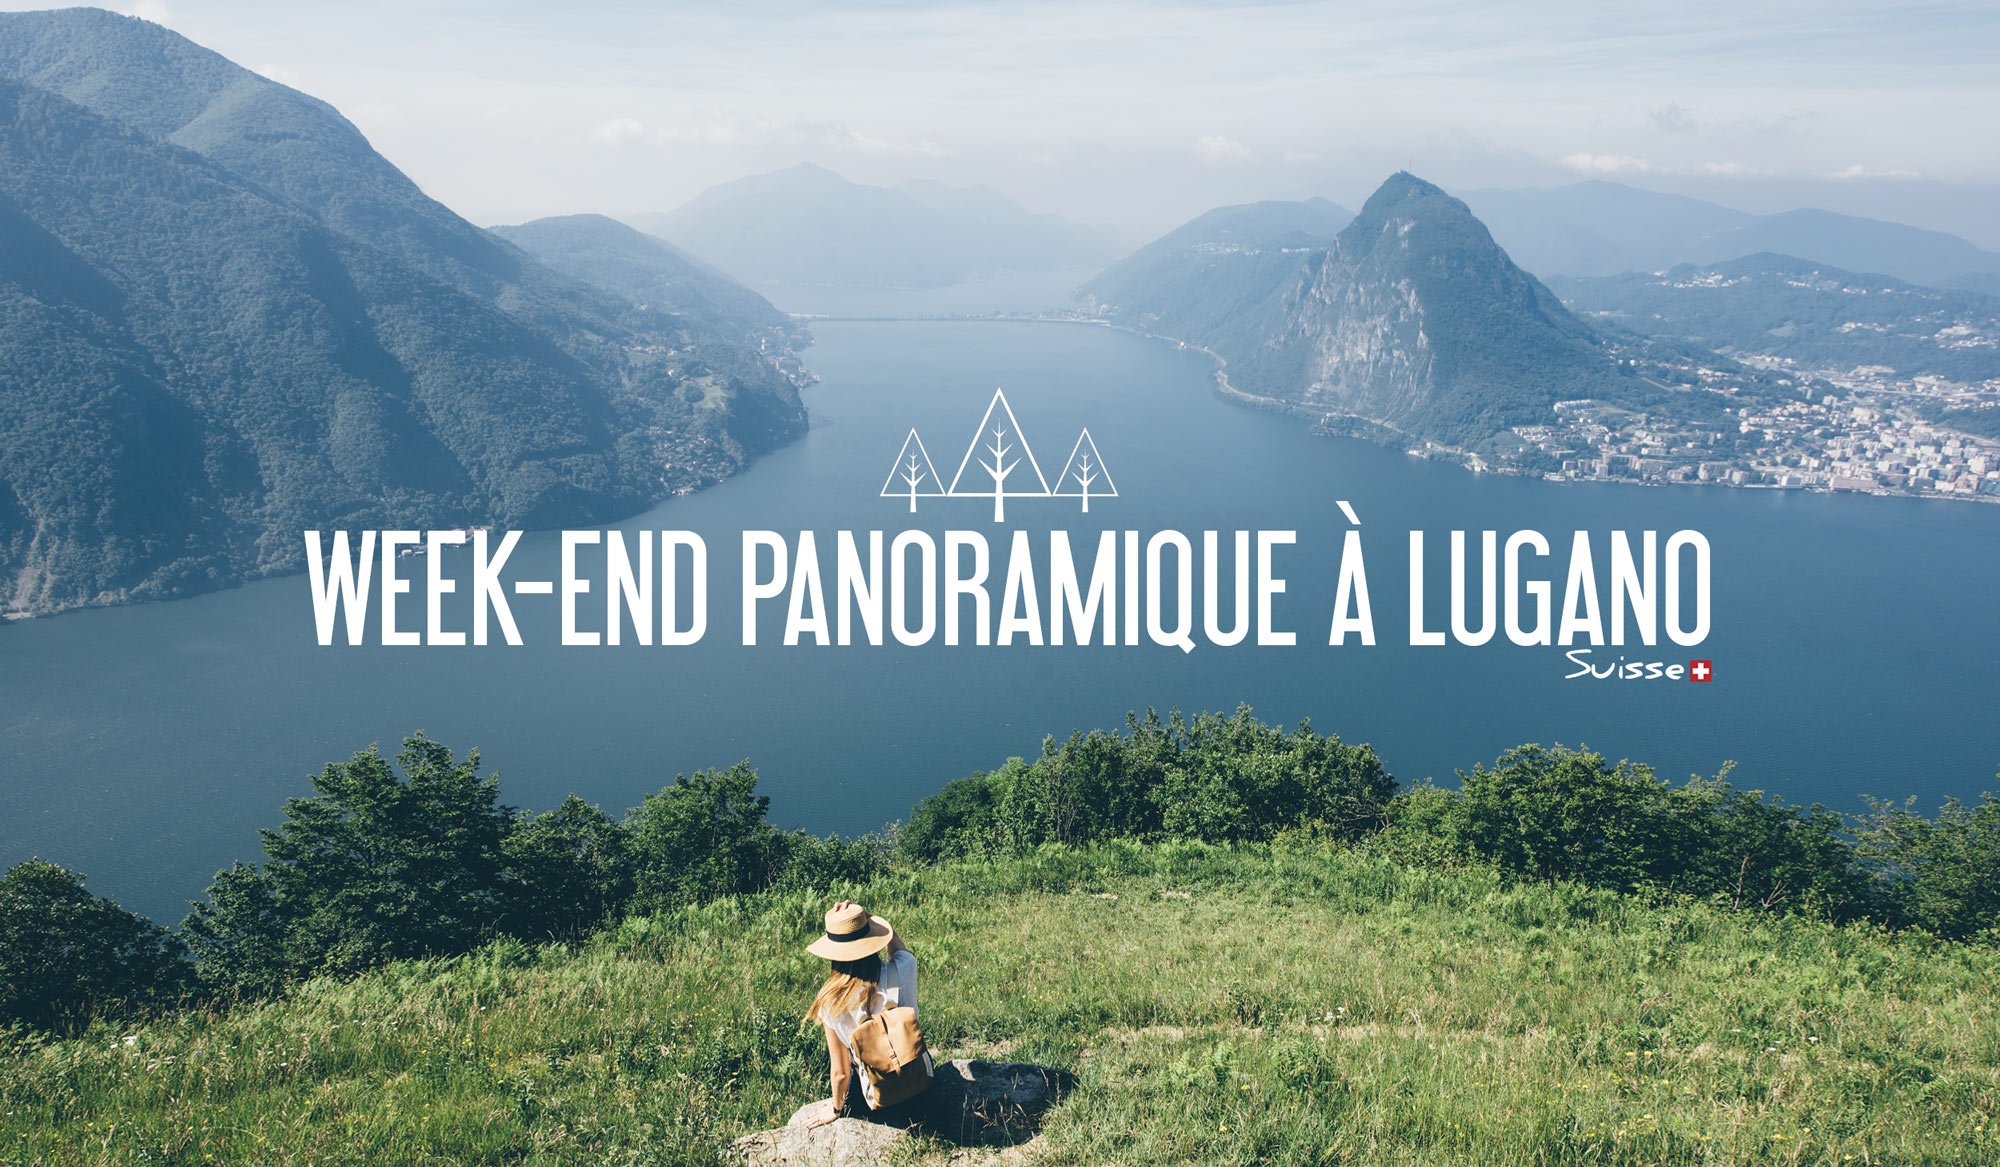 Week-end à Lugano en Suisse, Que faire?